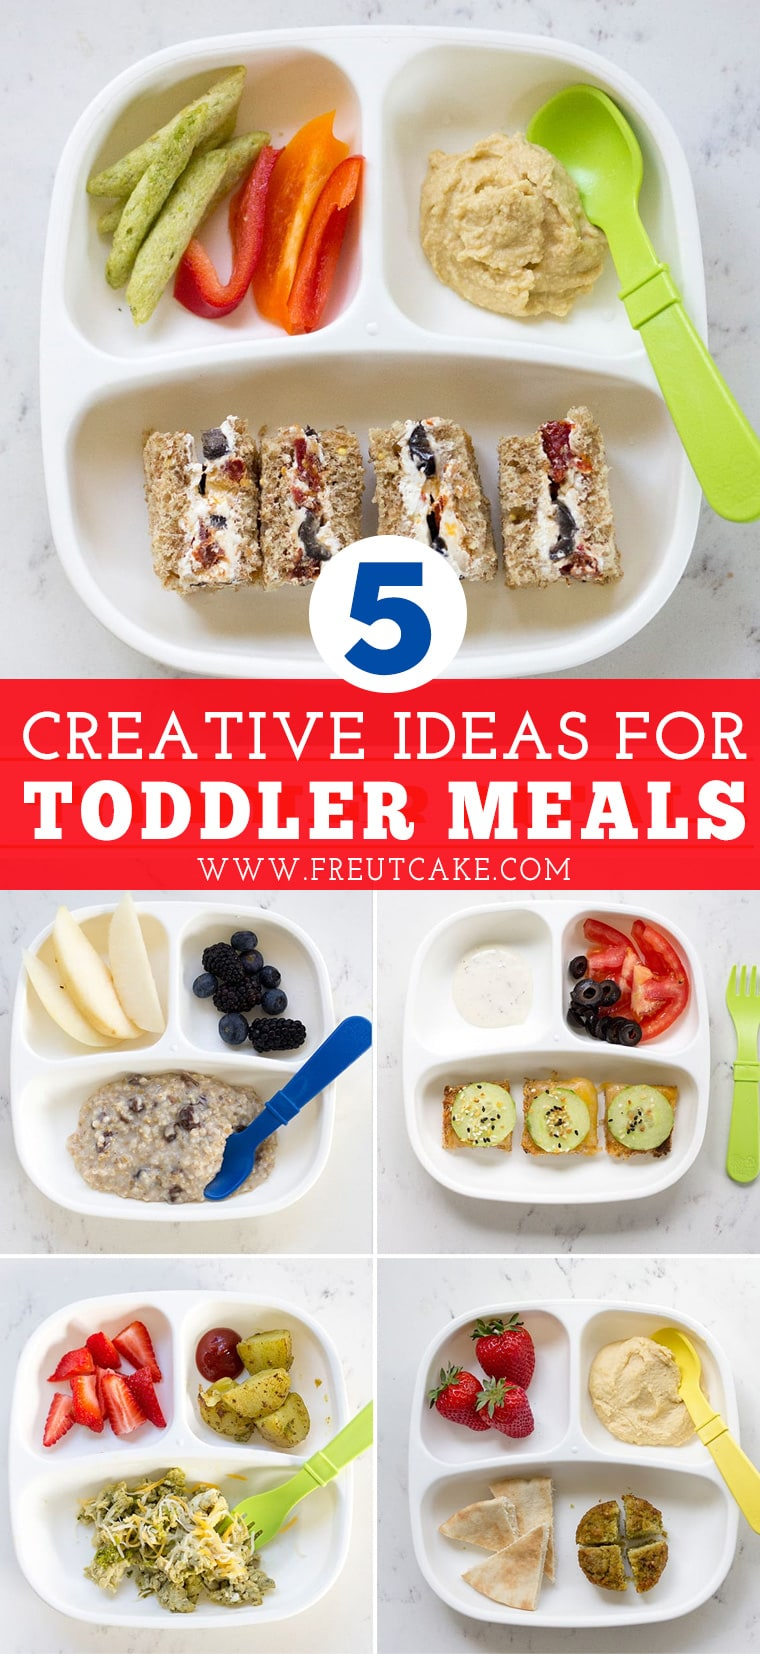 Creative Toddler Meal Ideas